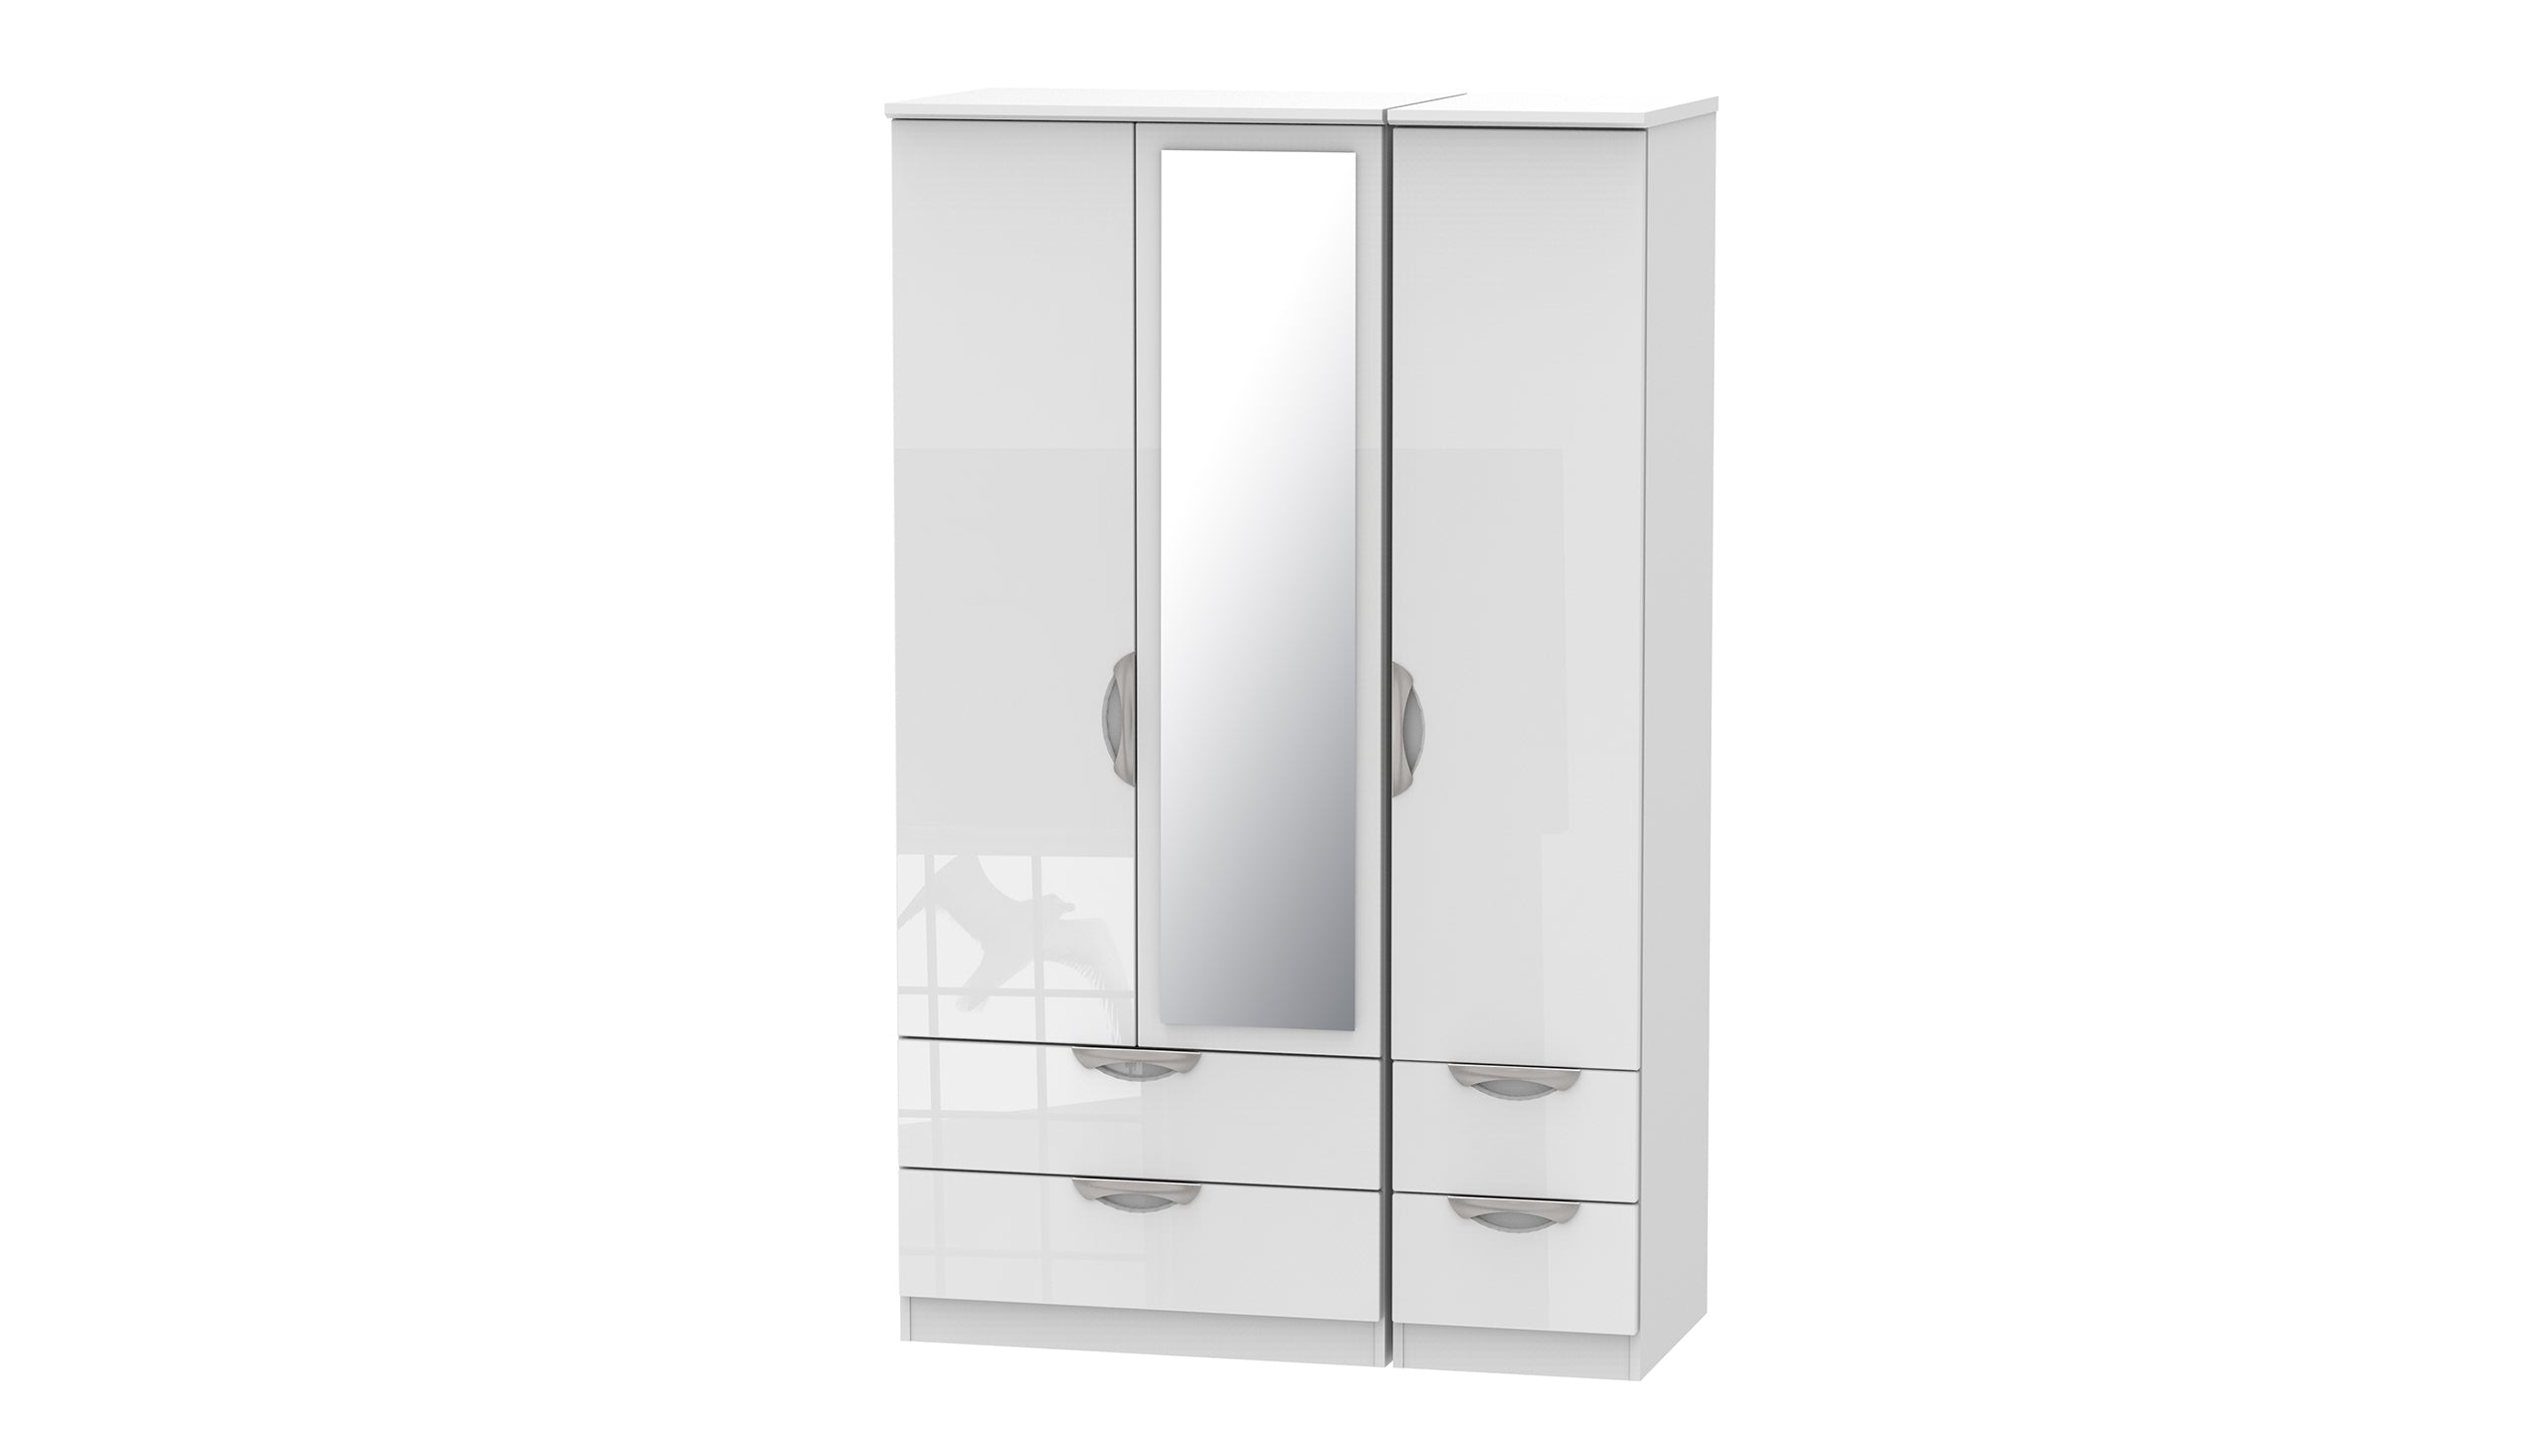 Moda 3 Door 4 Drawer 1 Mirror Wardrobe - AHF Furniture & Carpets